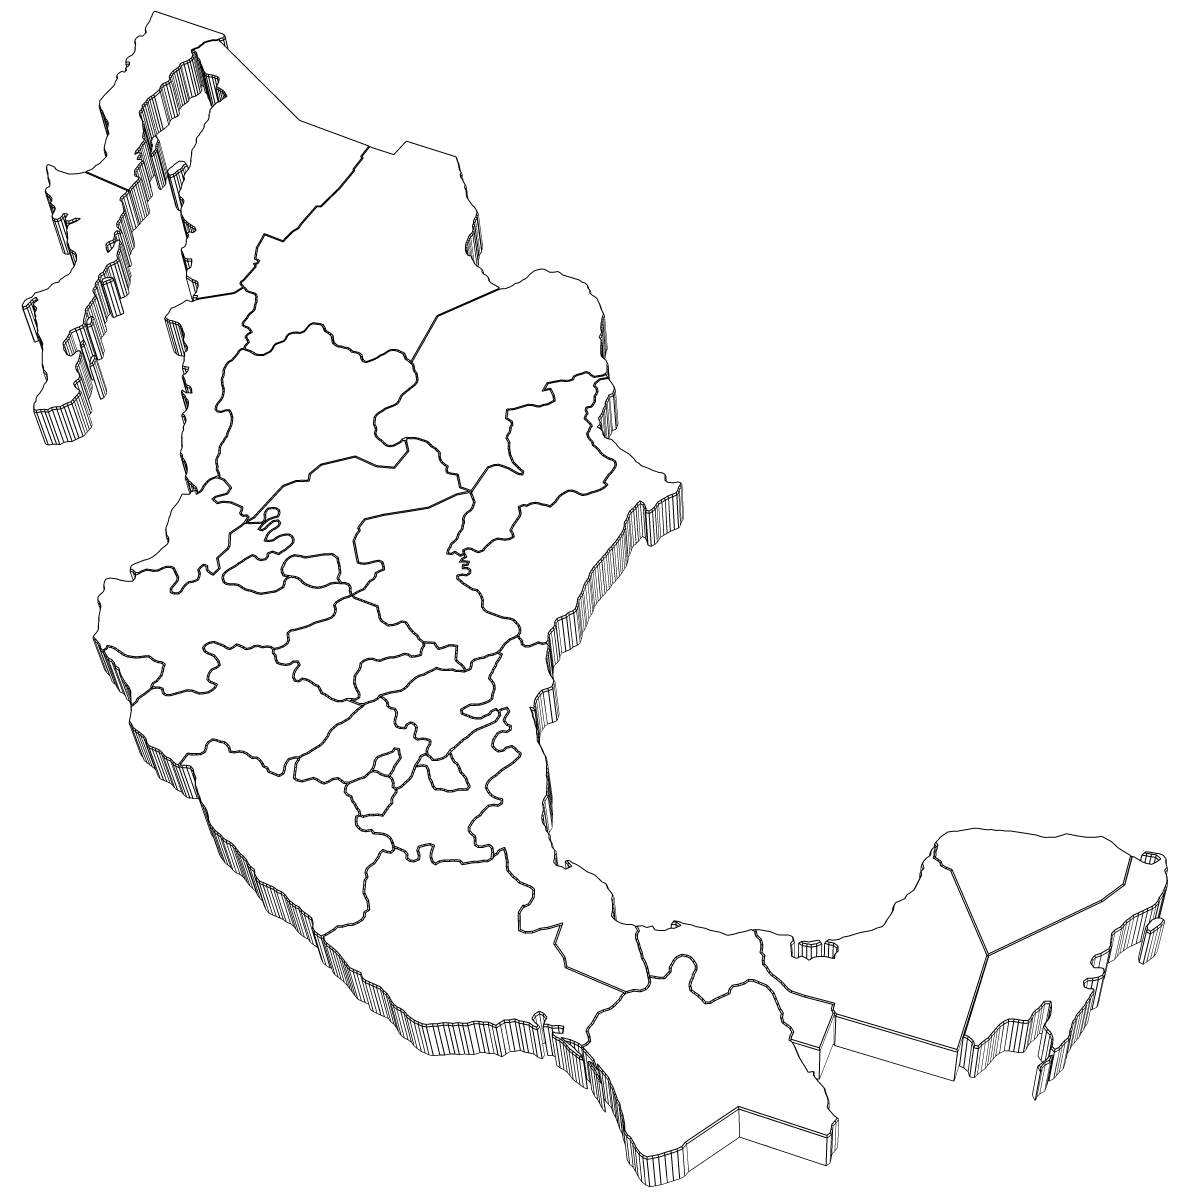 mexico map 3d model max obj 3ds wrl wrz mtl tga 5